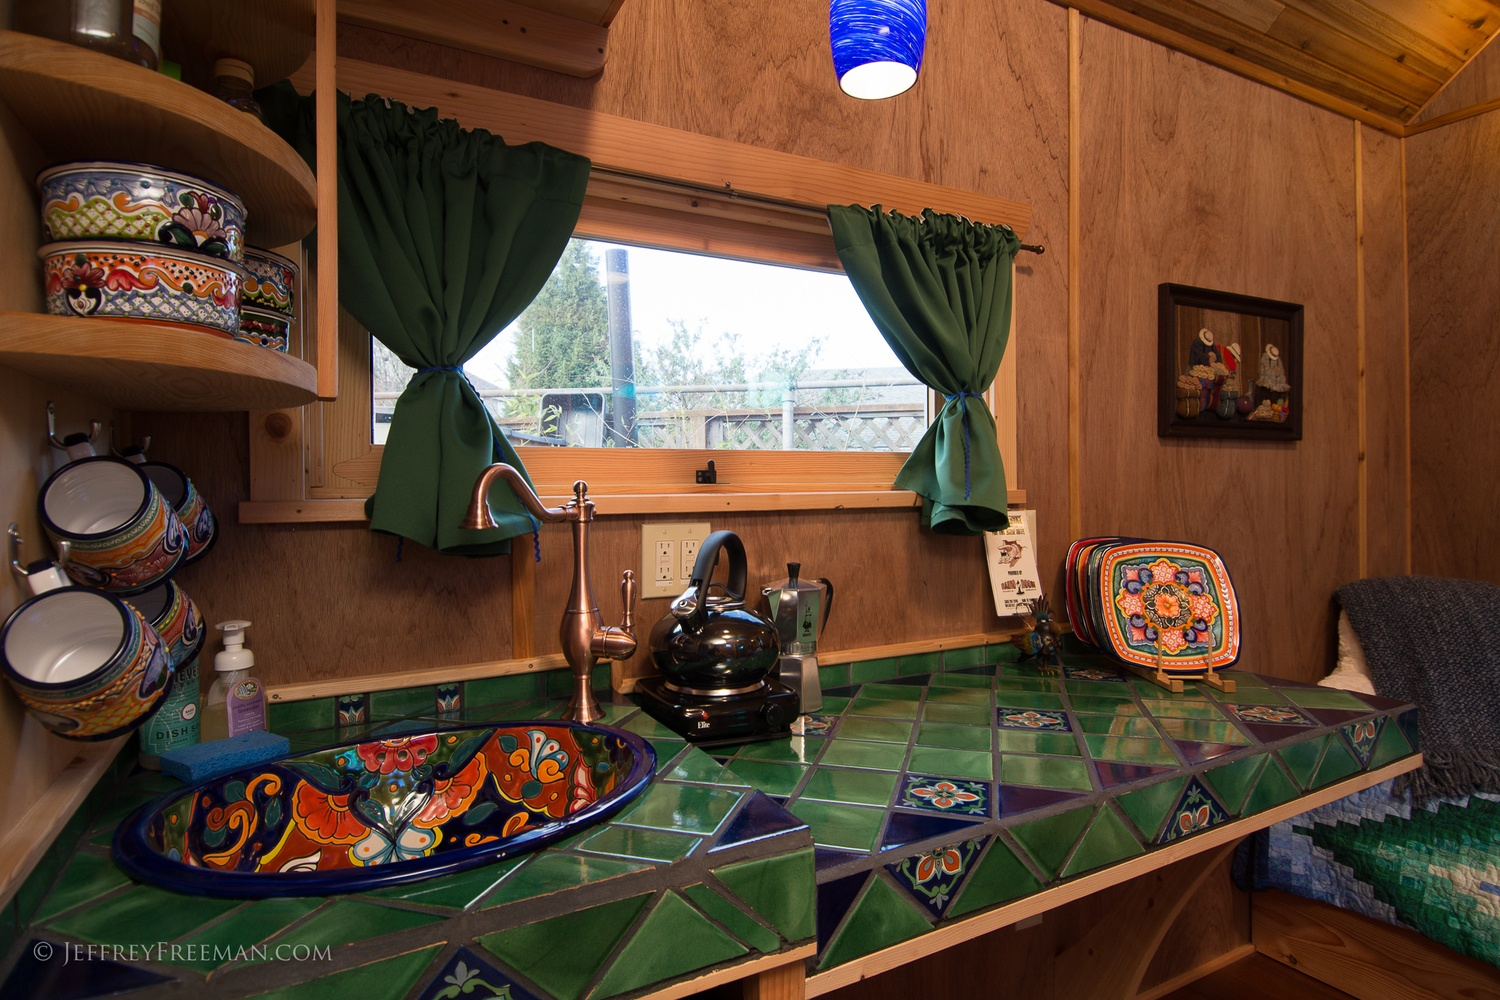 Kitchen - Pacifica by Zyl Vardos at the Tiny House Hotel